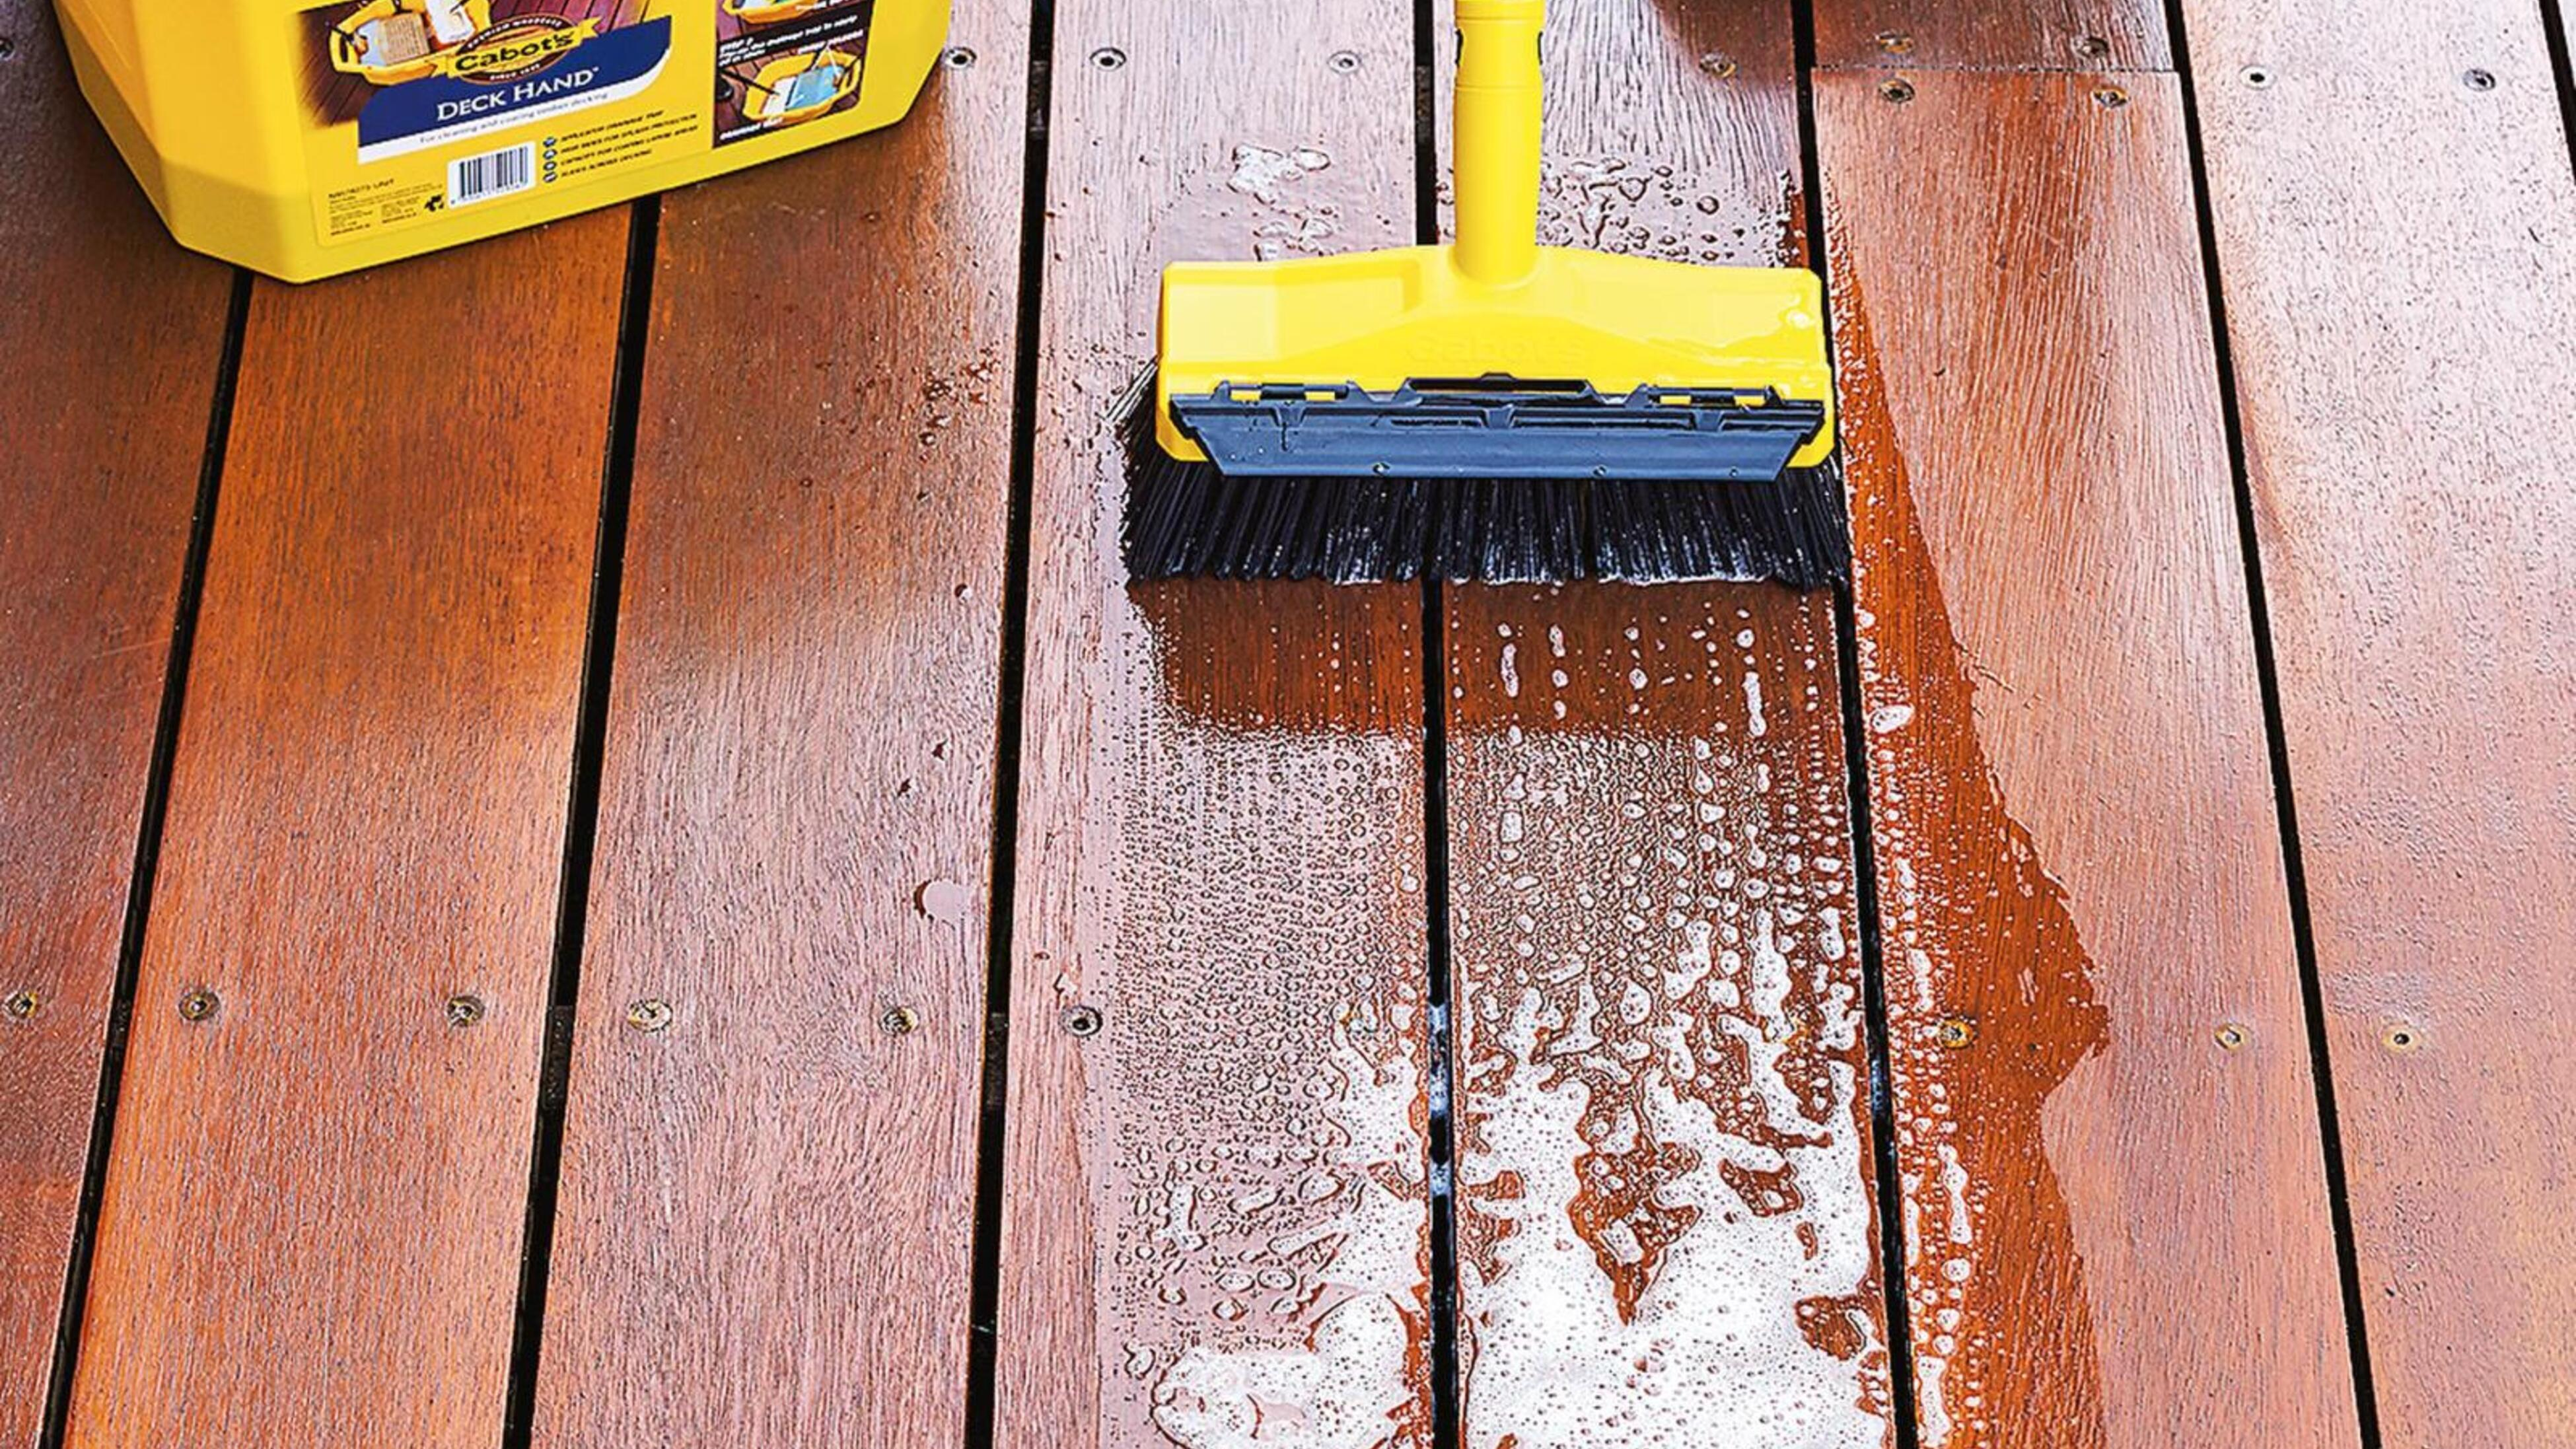 Outdoor deck being scrubbed with Cabot's Deck Hand product.